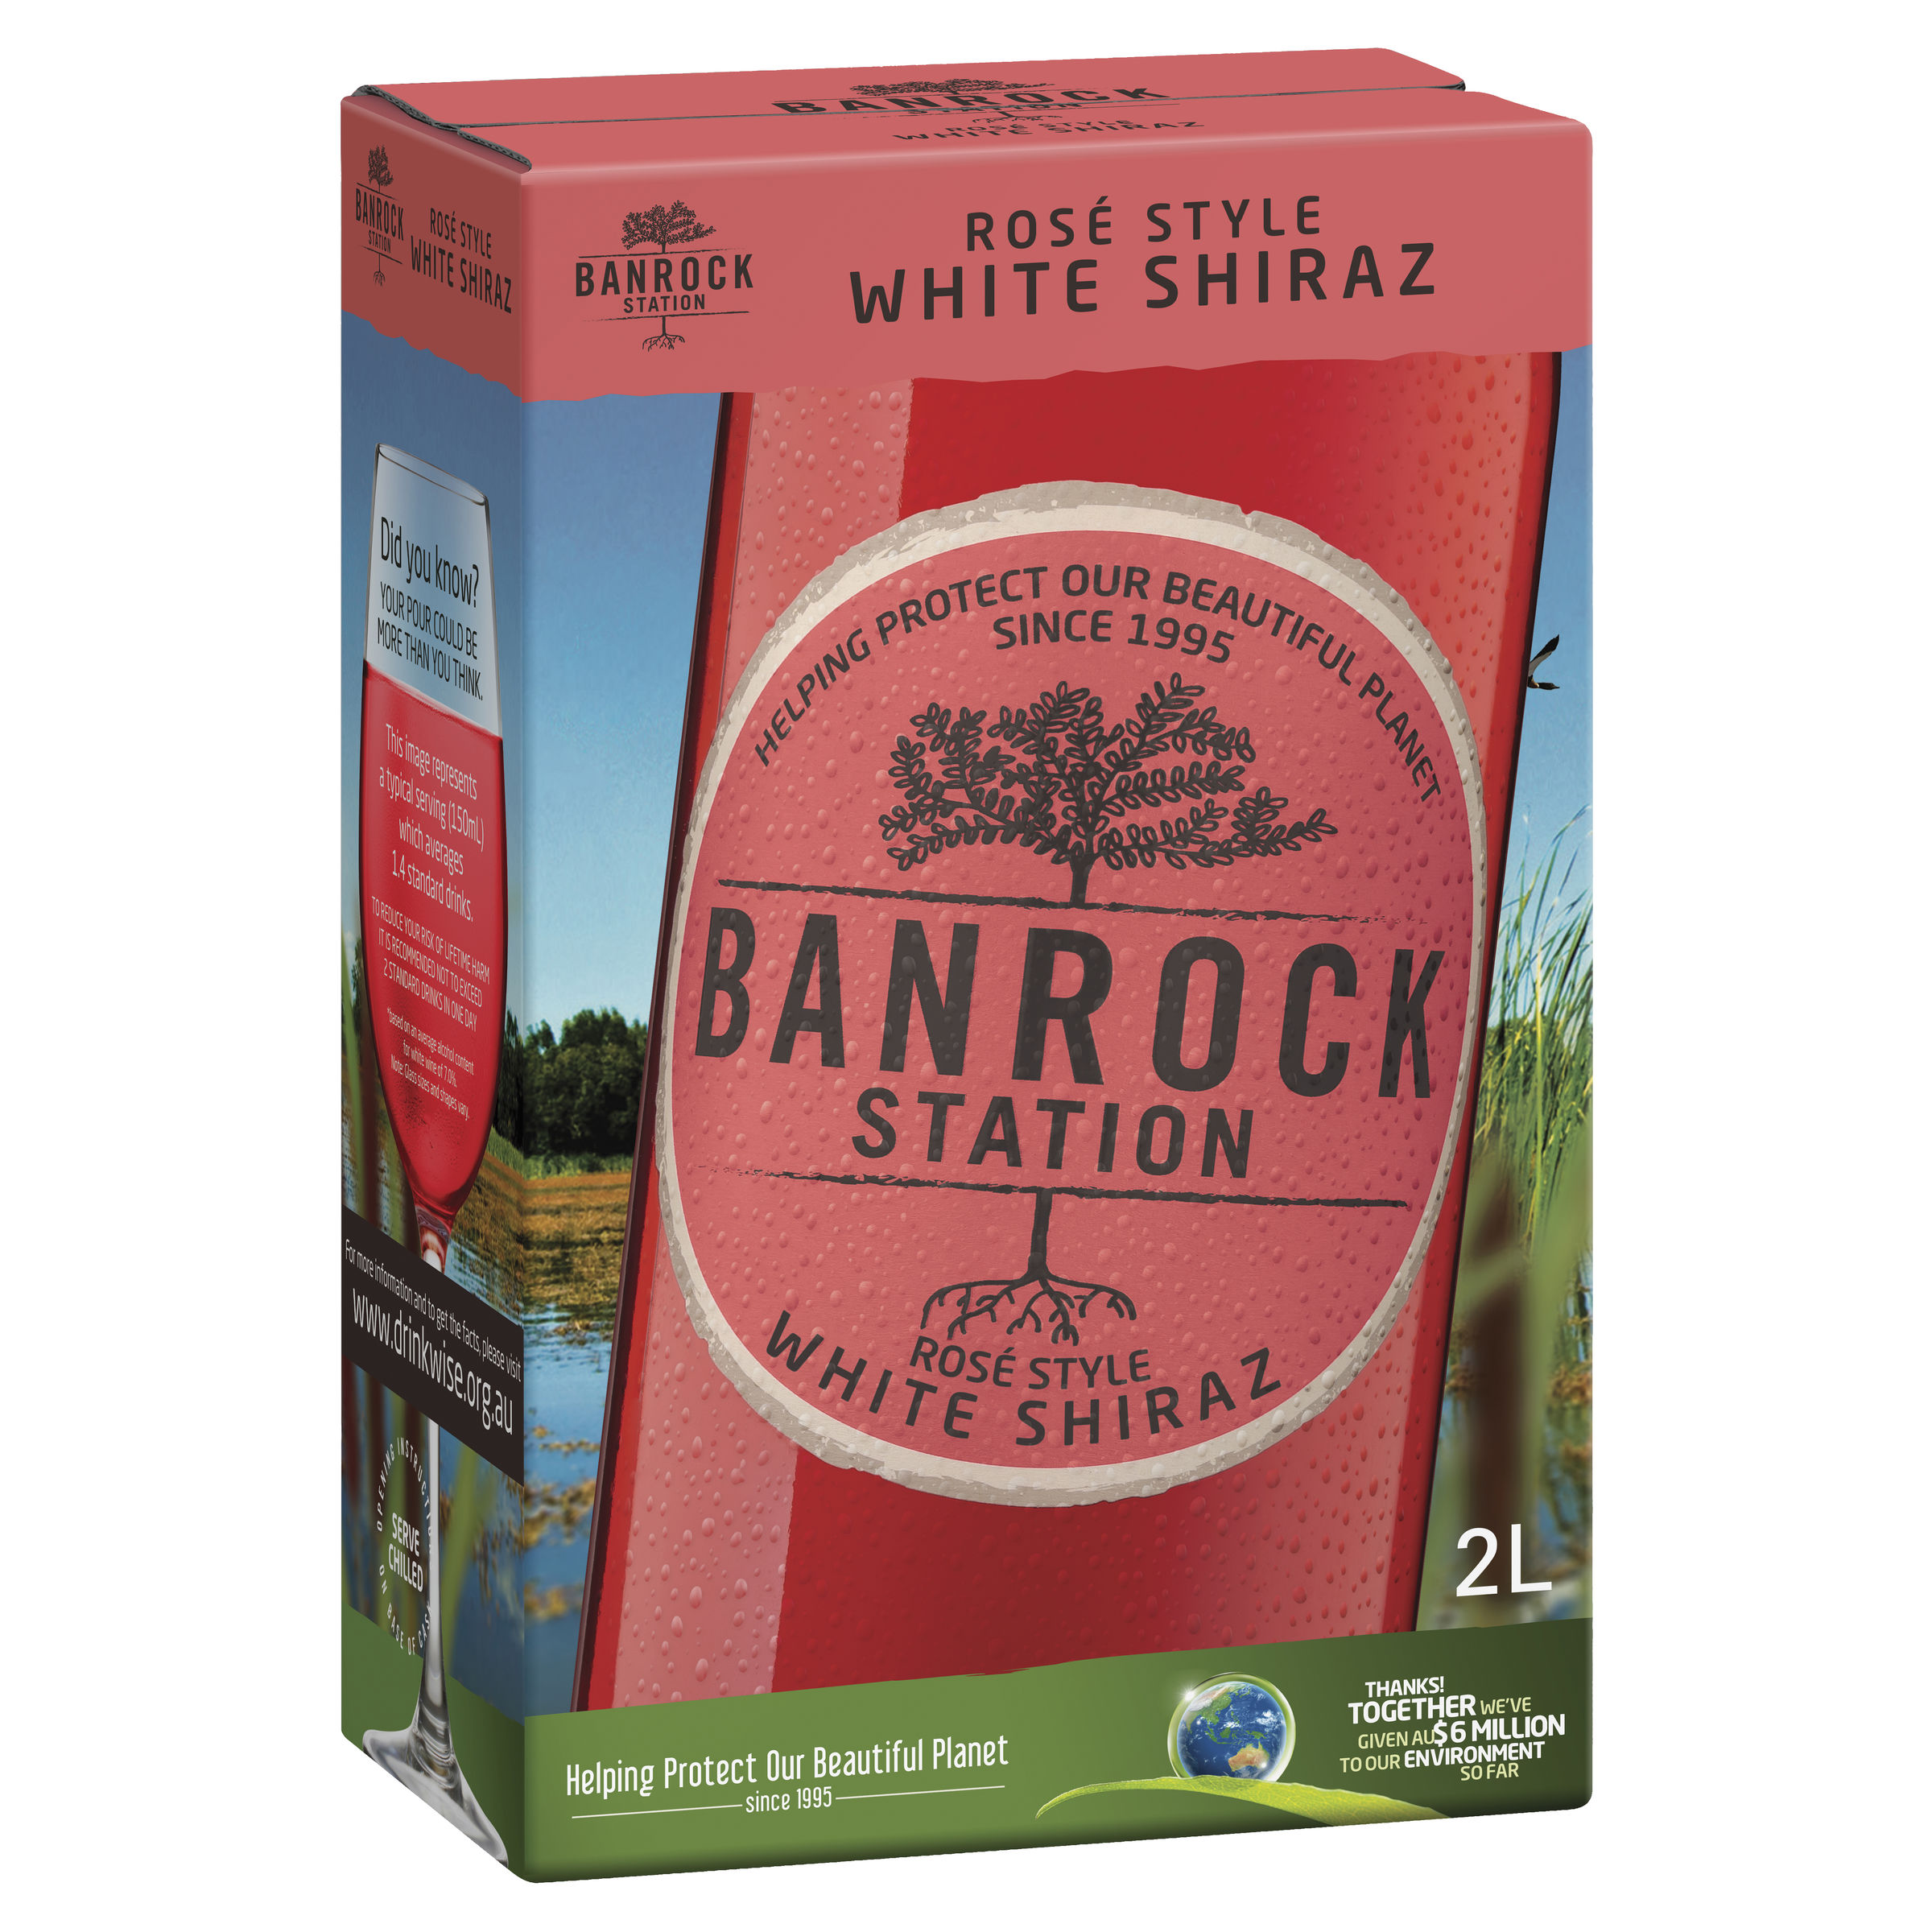 BANROCK STATION WHITE SHIRAZ